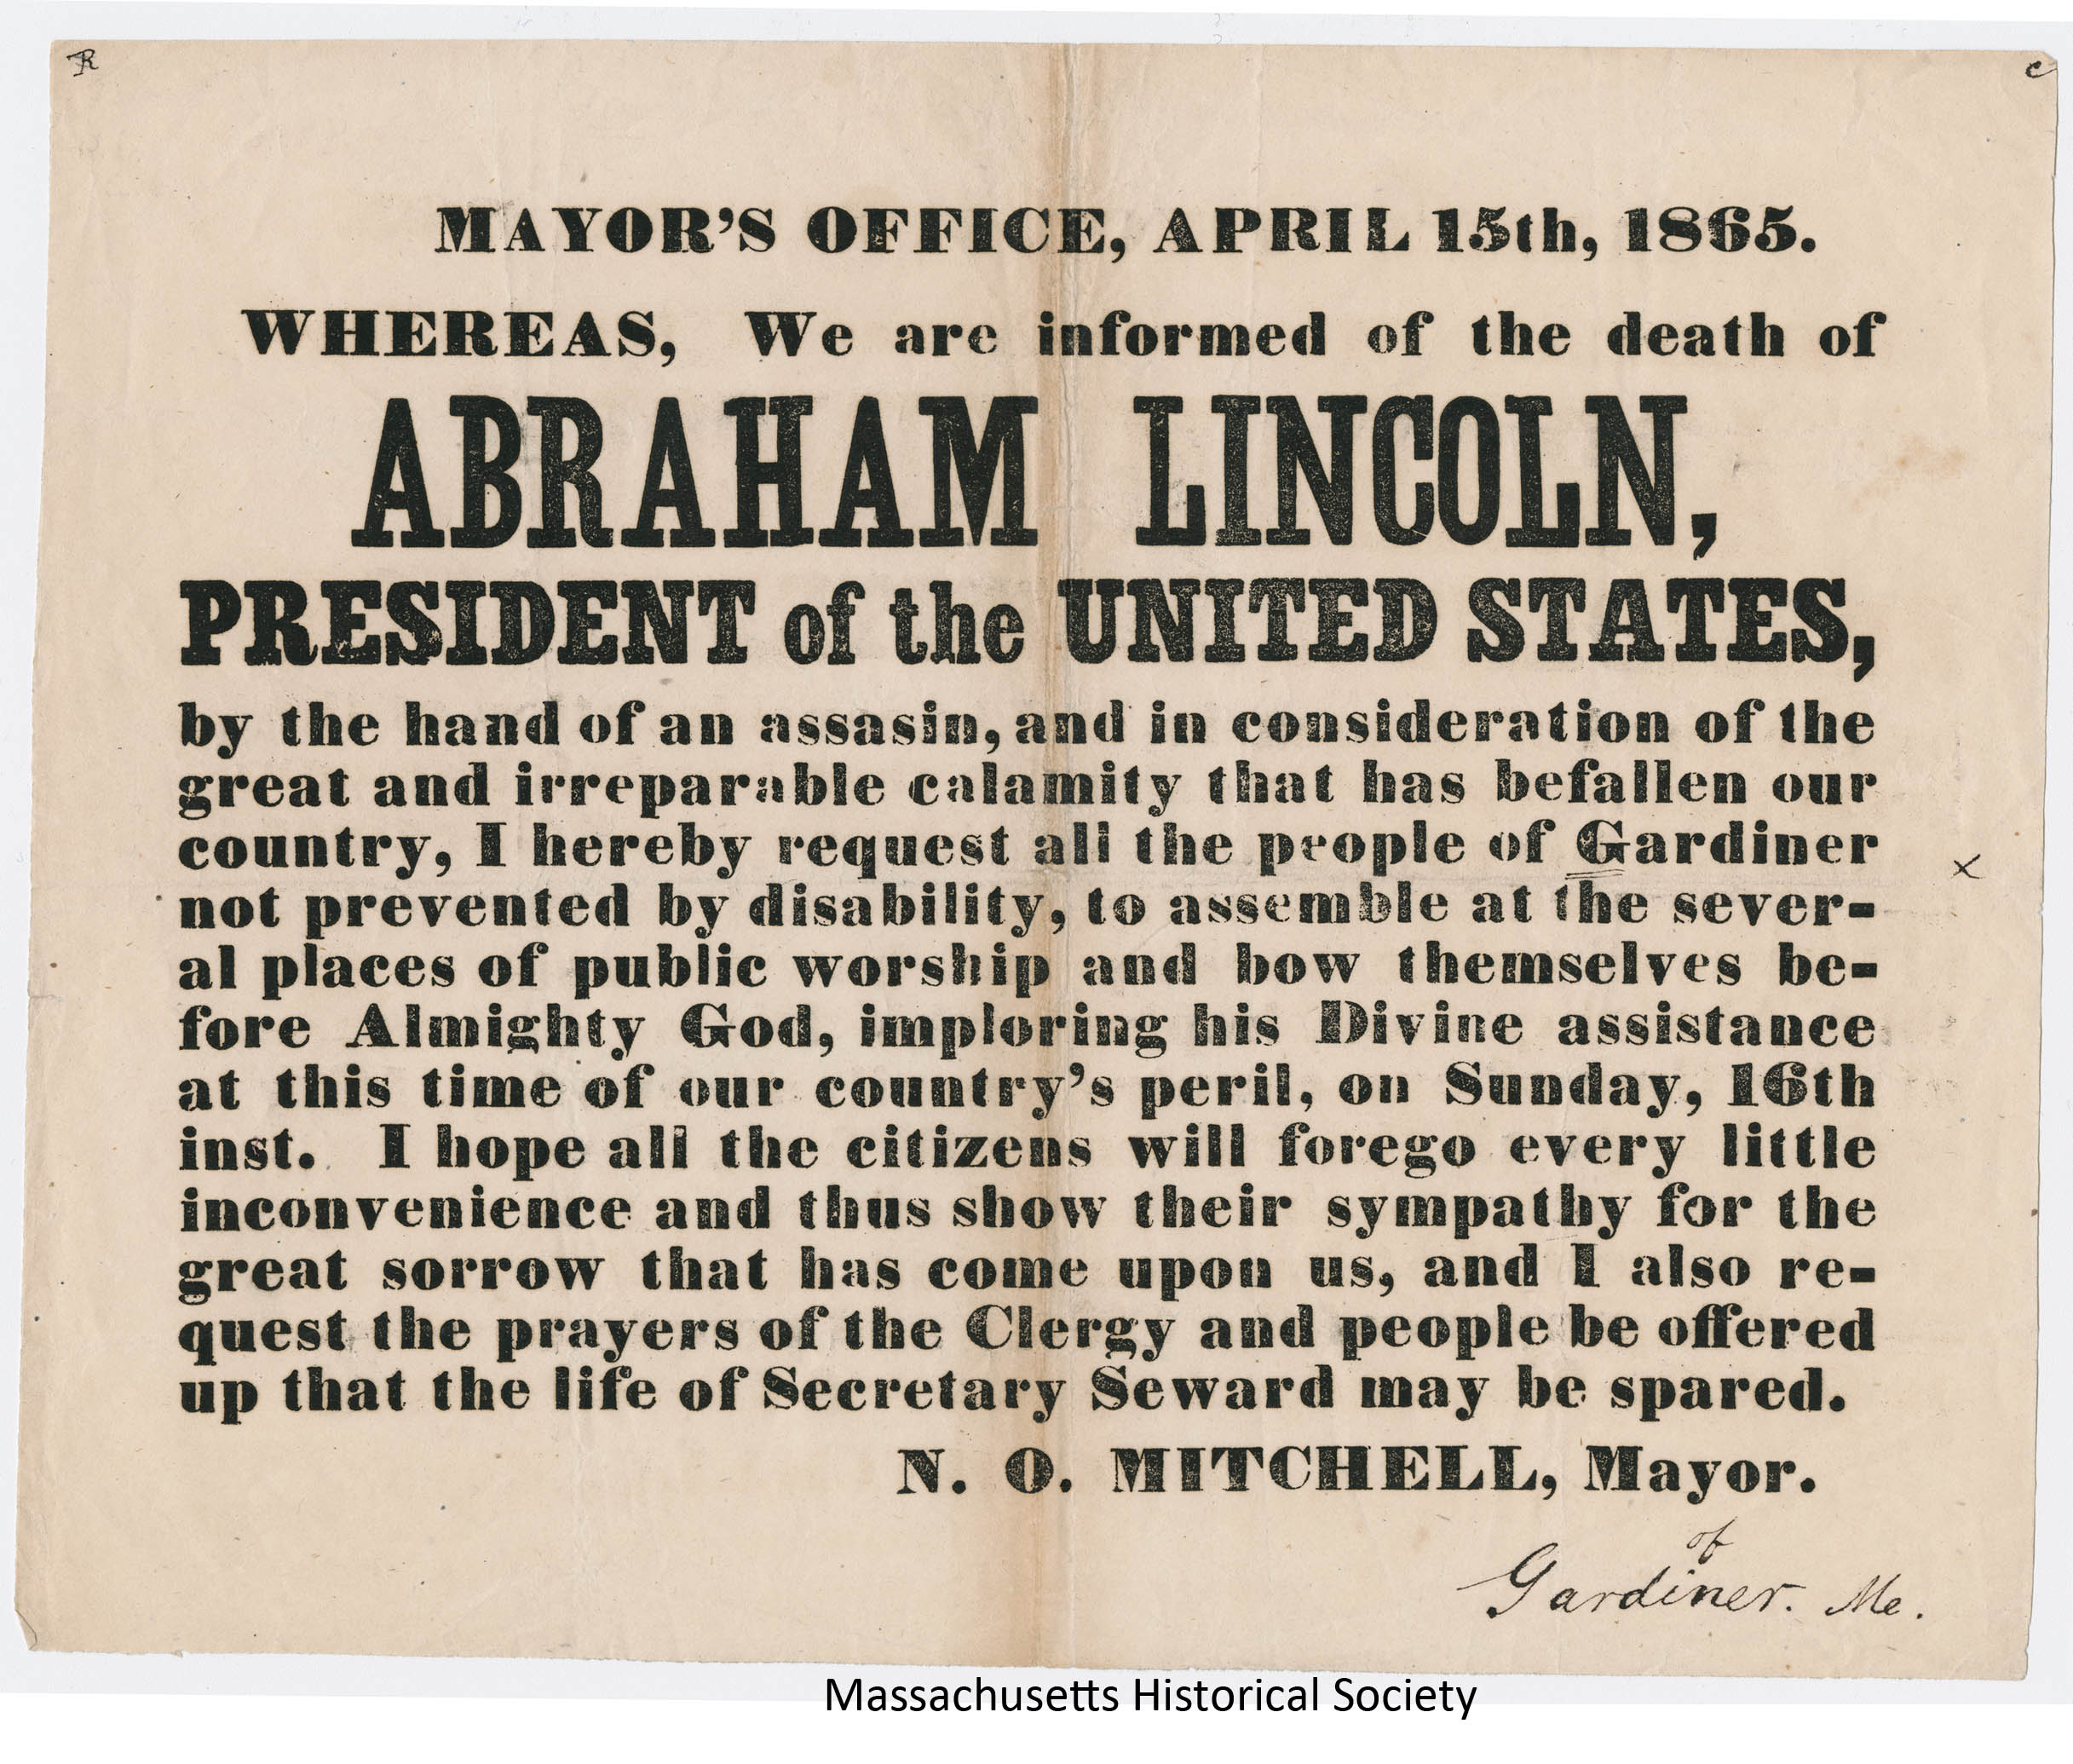 Mayor's Office, April 15th, 1865 Whereas, We are informed of the death of Abraham Lincoln.